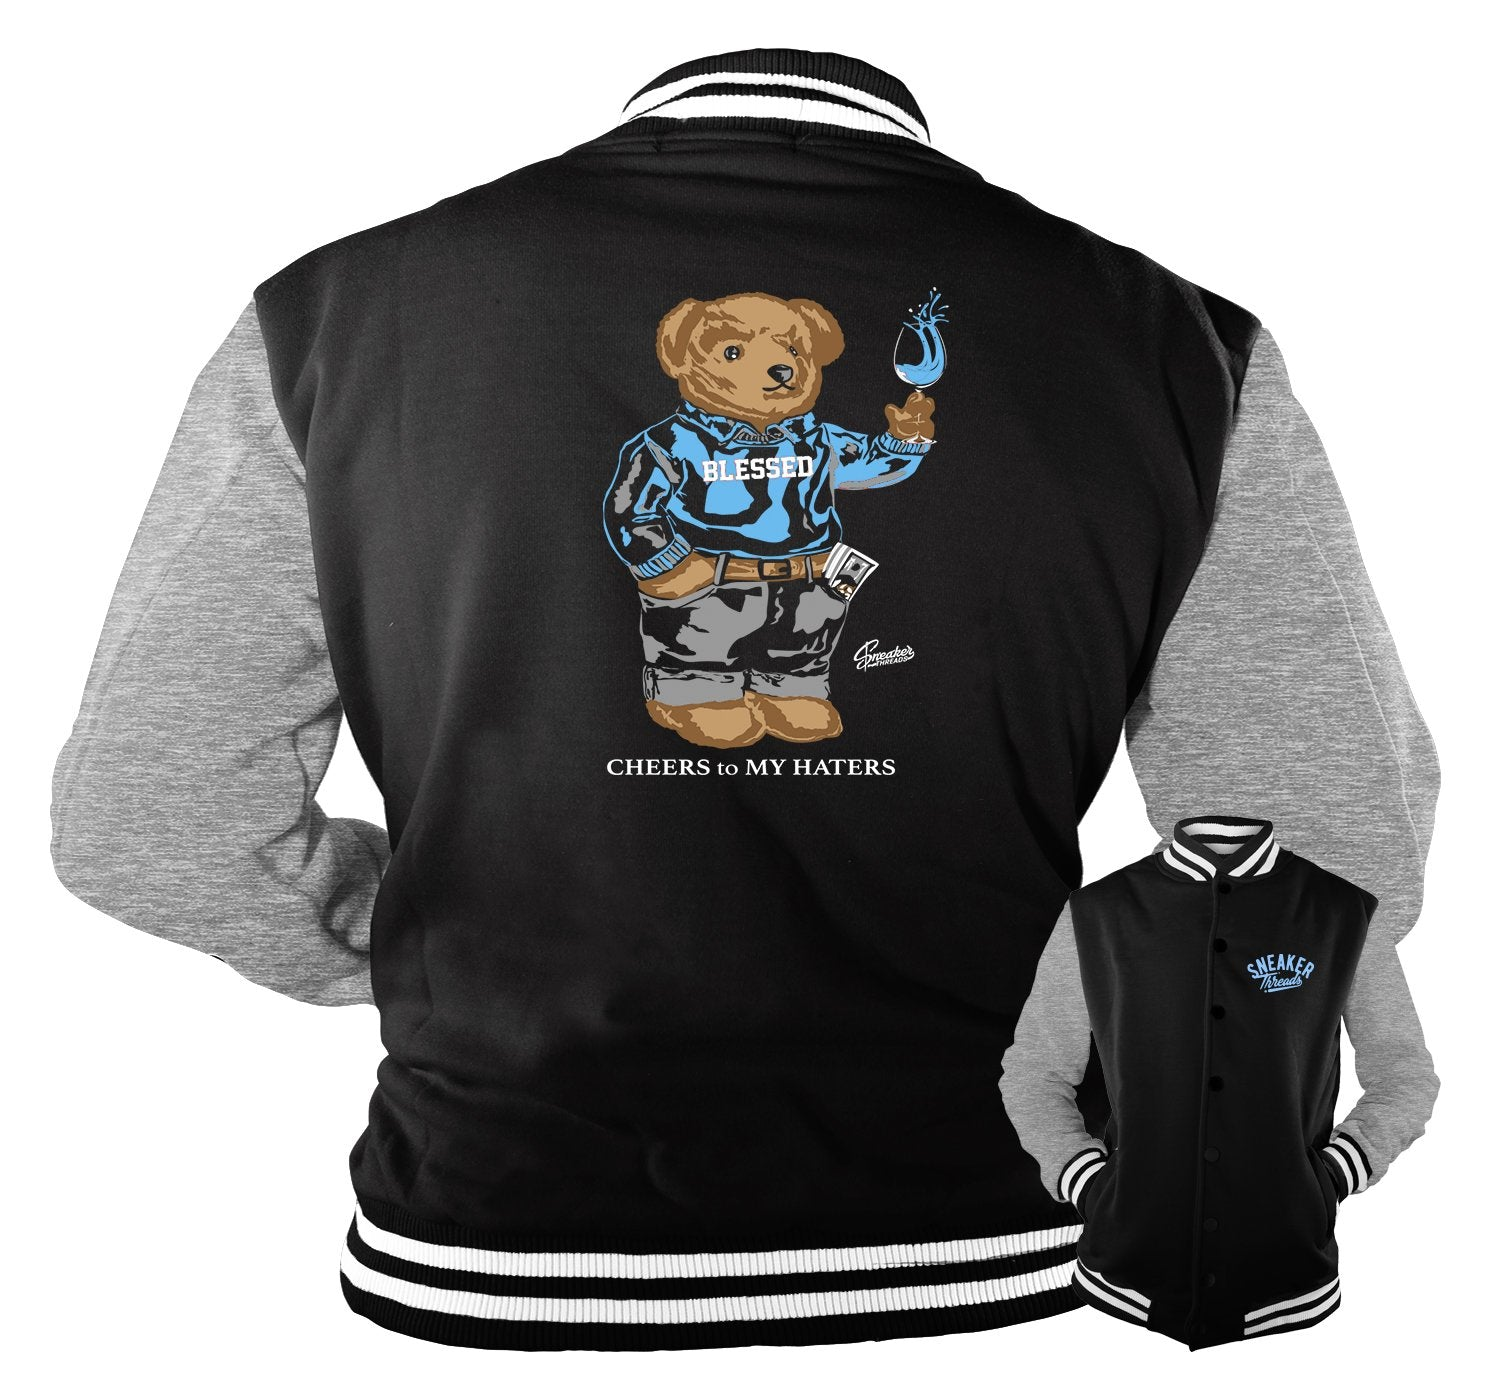 Jacket collection designed to match the sneaker unc collection 3s